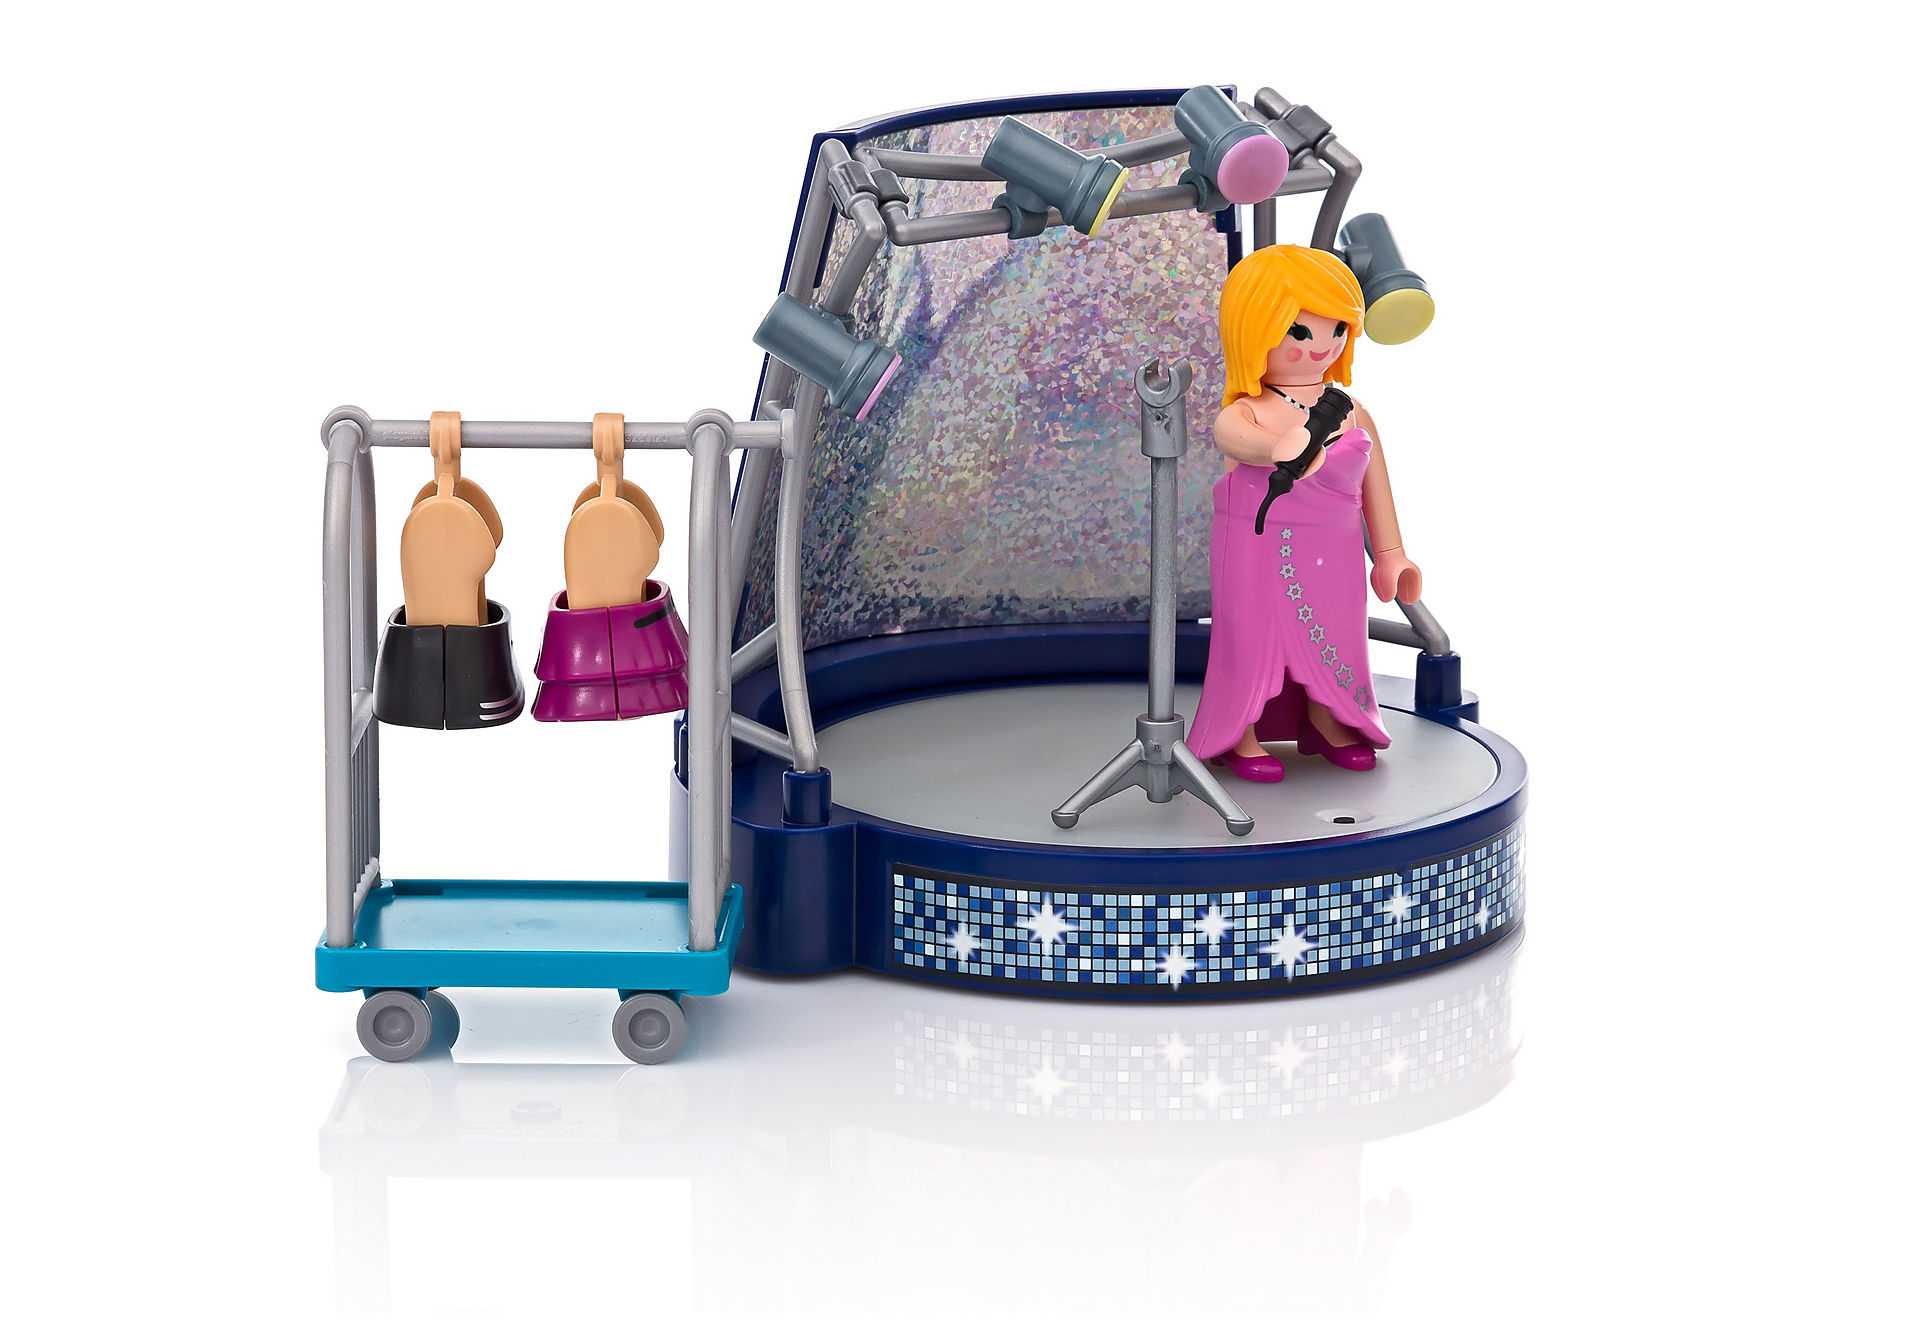 360degree image 37